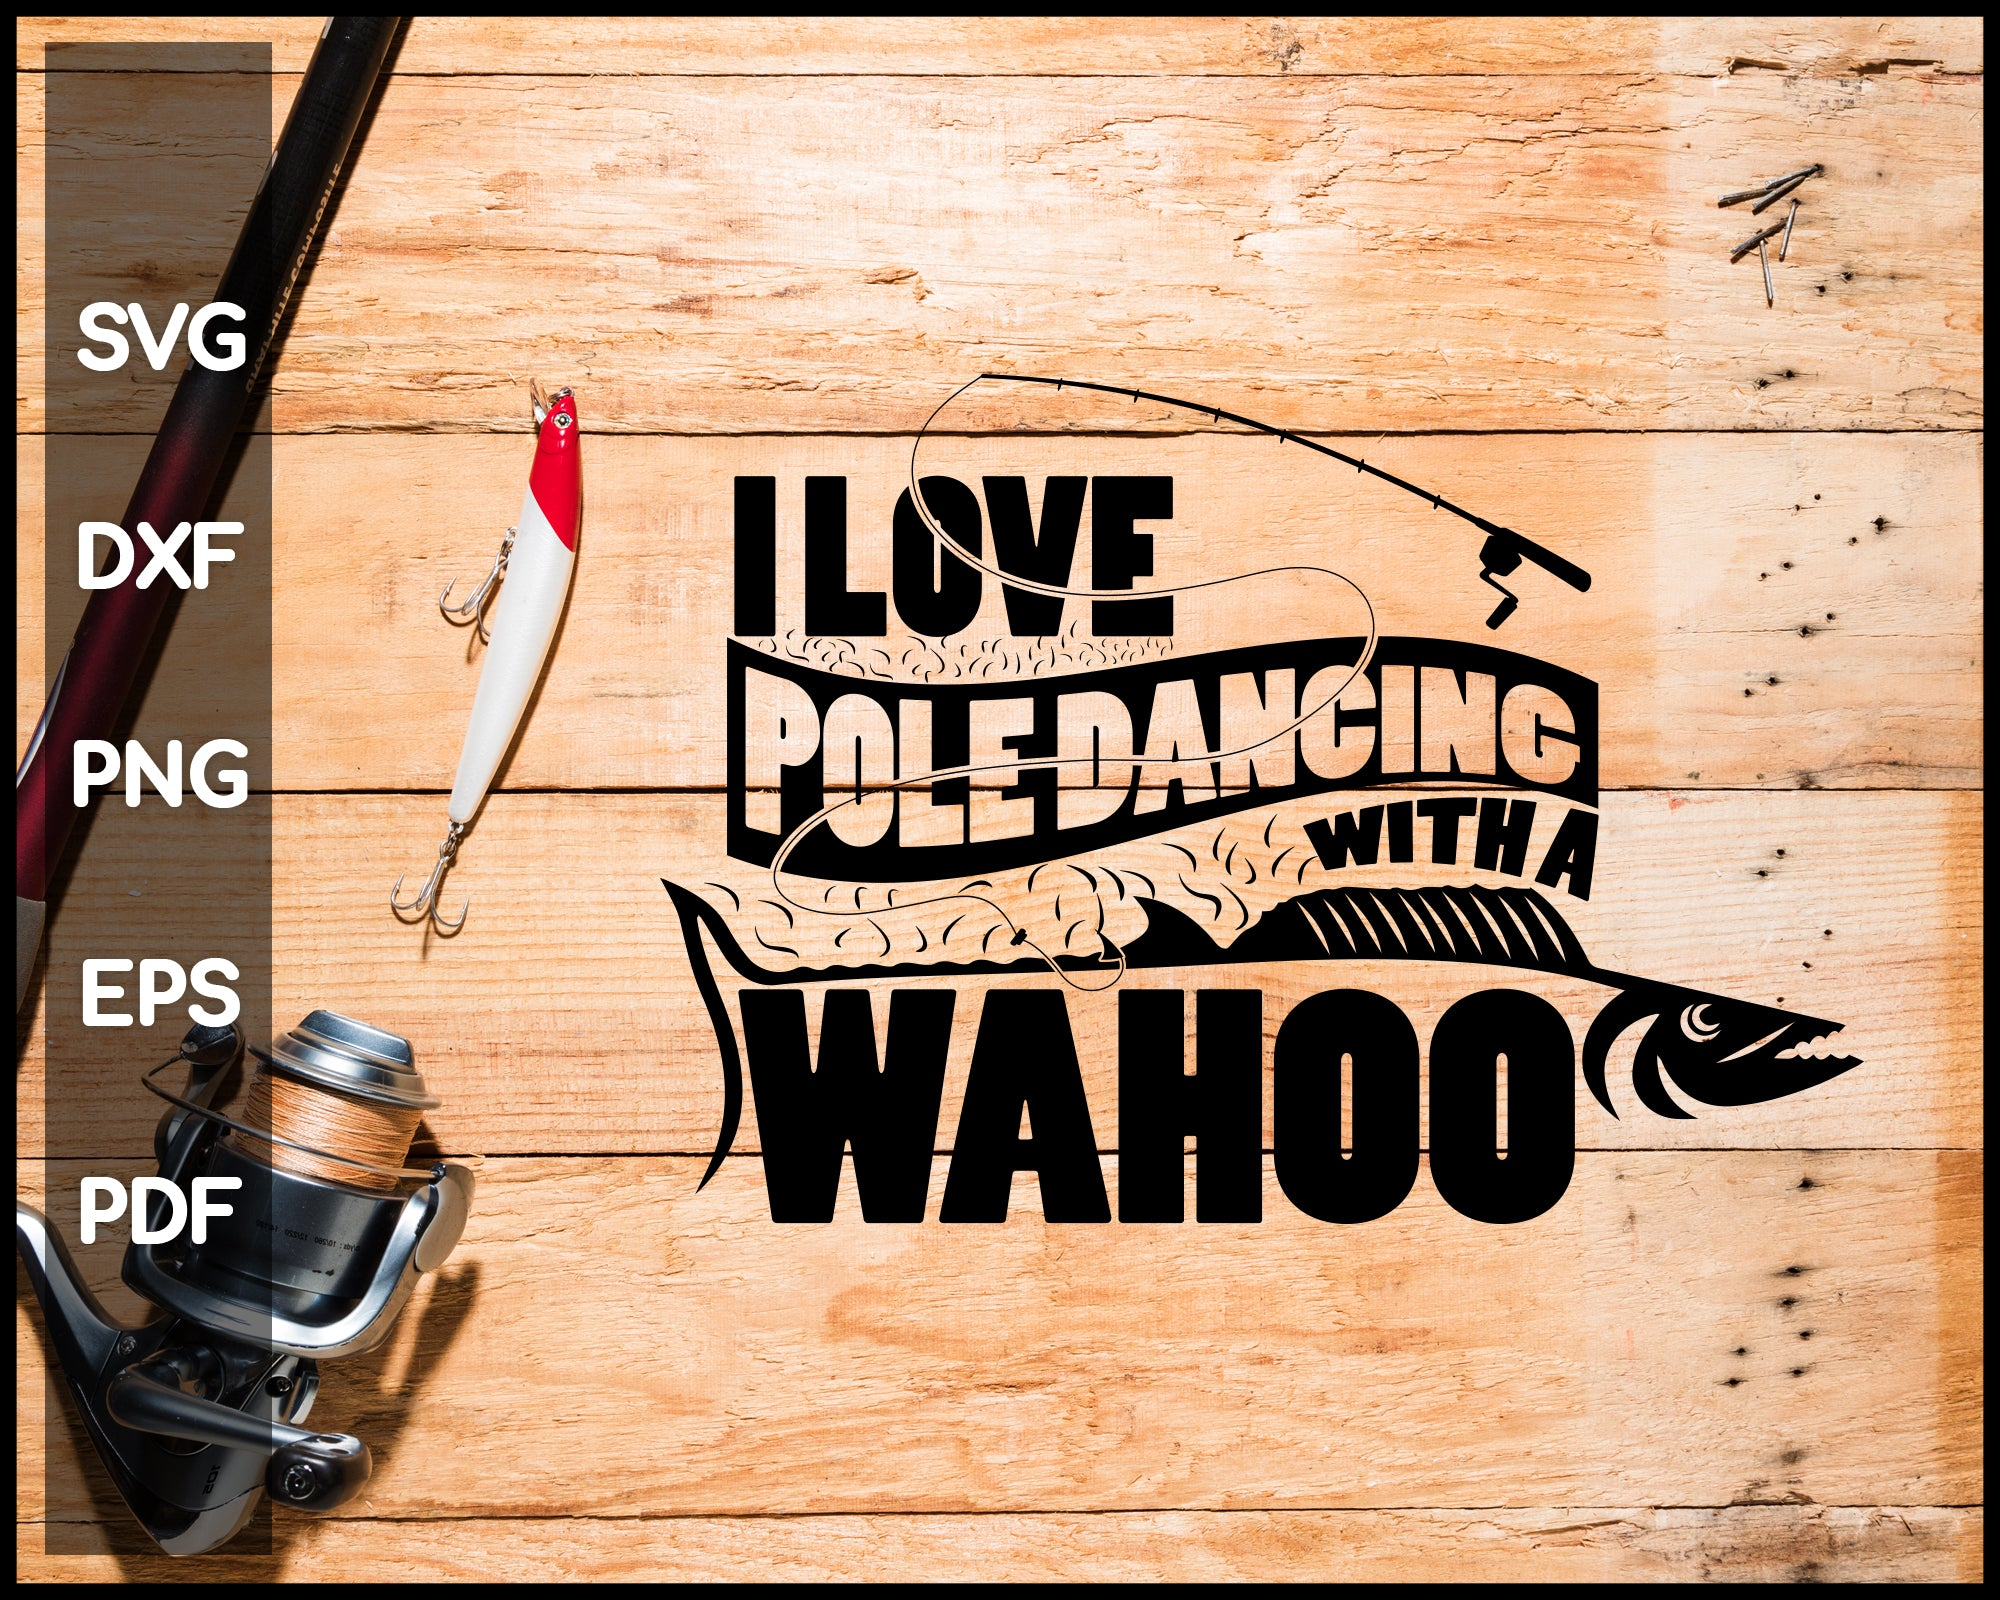 I Love Pole Dancing With A Wahoo svg png Silhouette Designs For Cricut And Printable Files